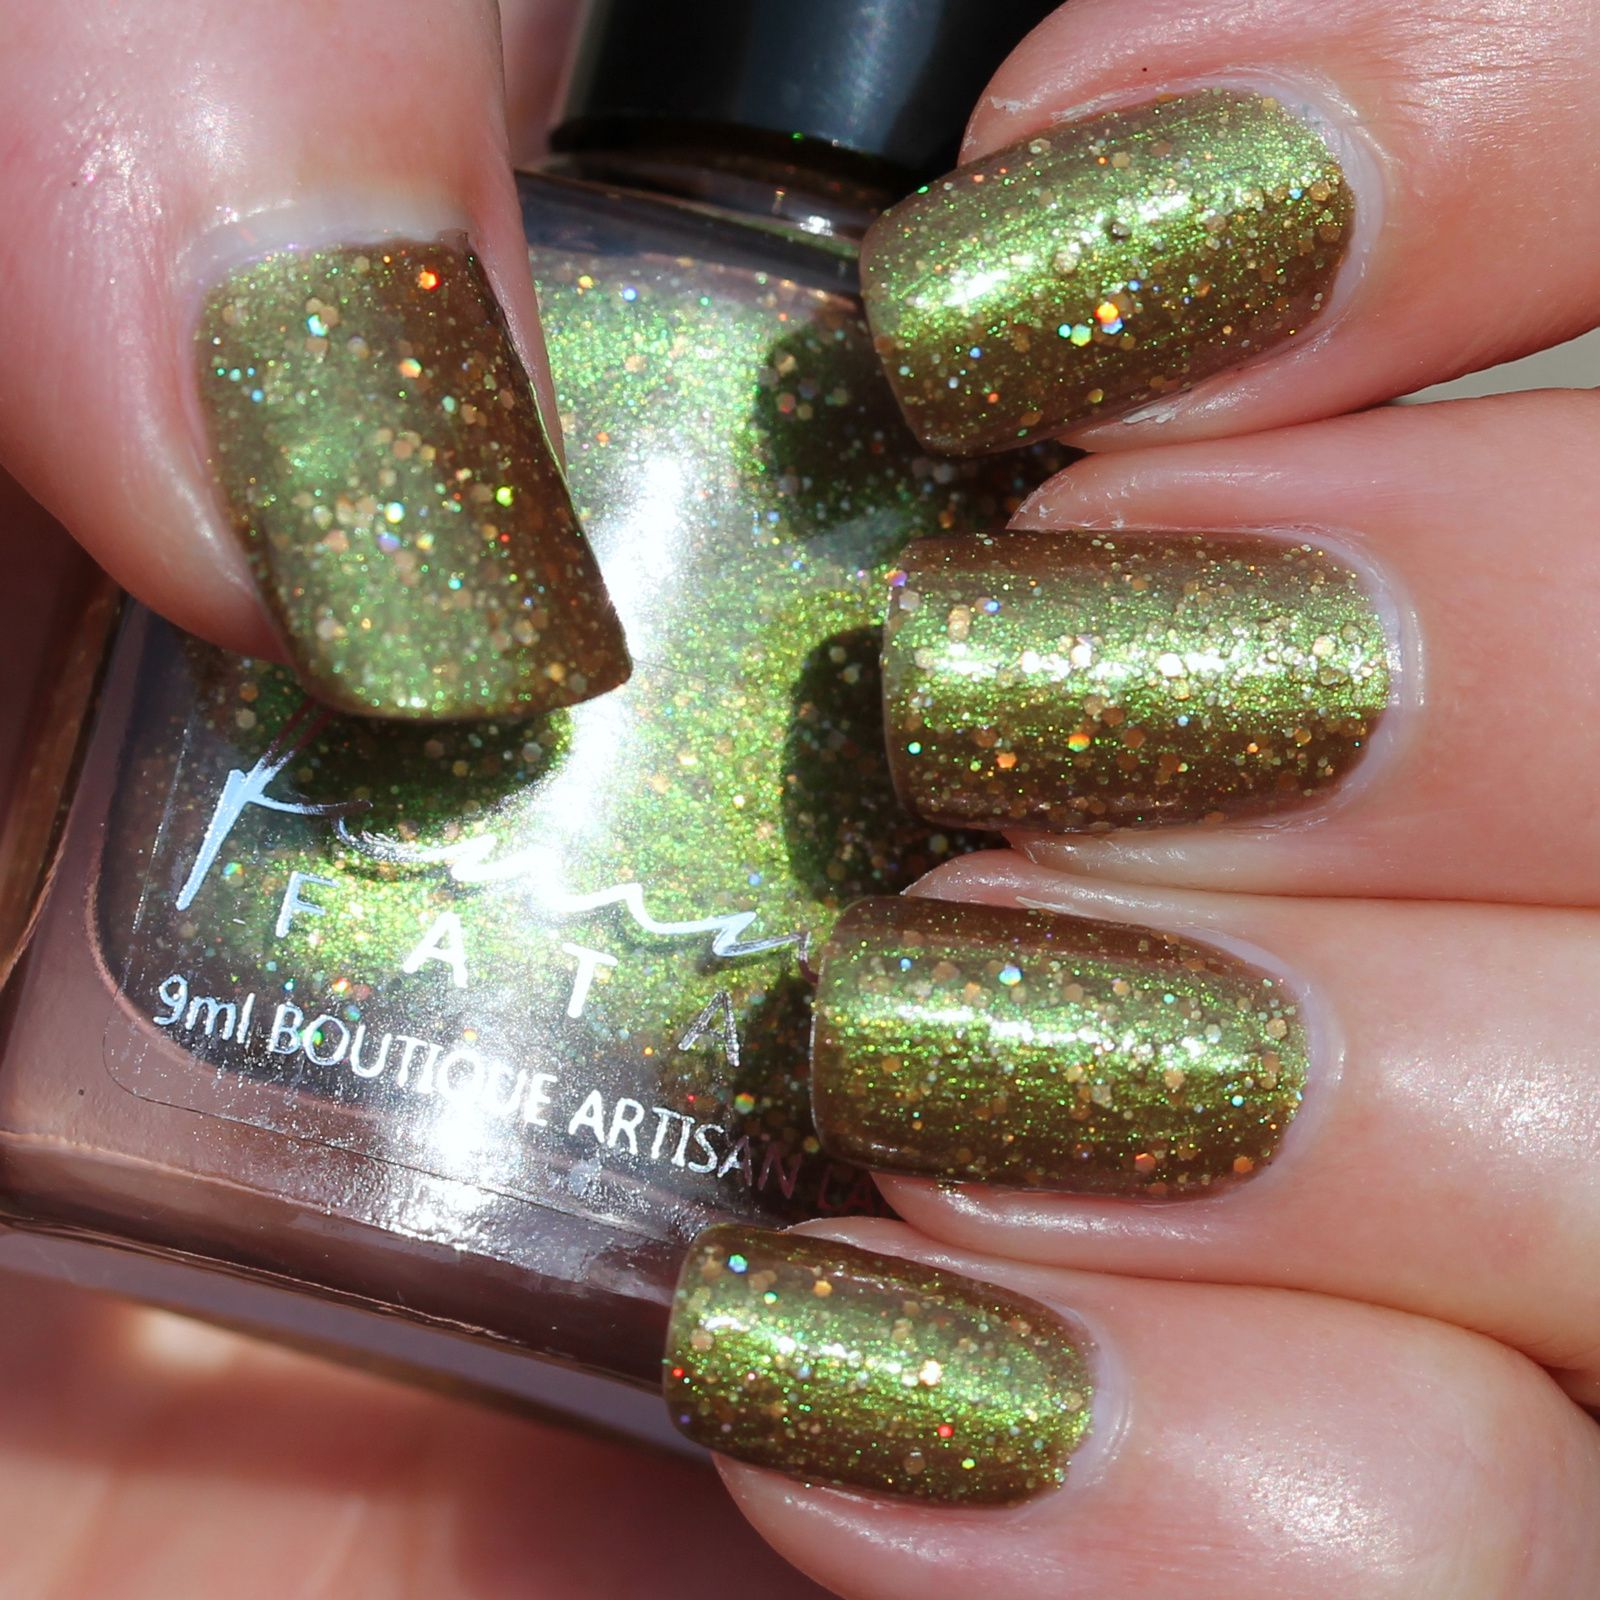 Femme Fatale Cosmetics - March Hare (2 coats, no top coat)